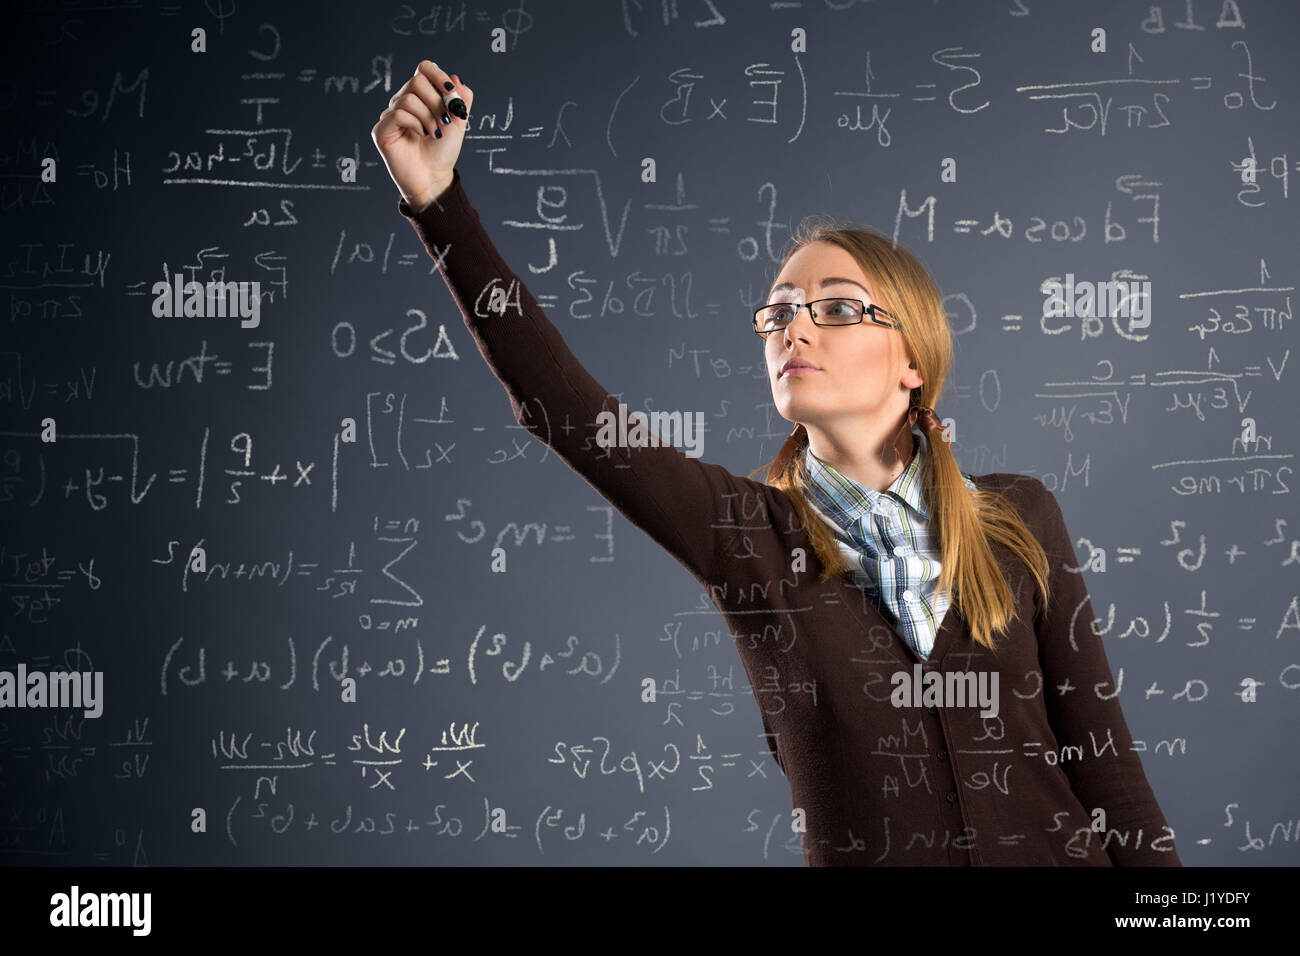 Schoolgirl work assignments in mathematics on transparent wall - Stock Image